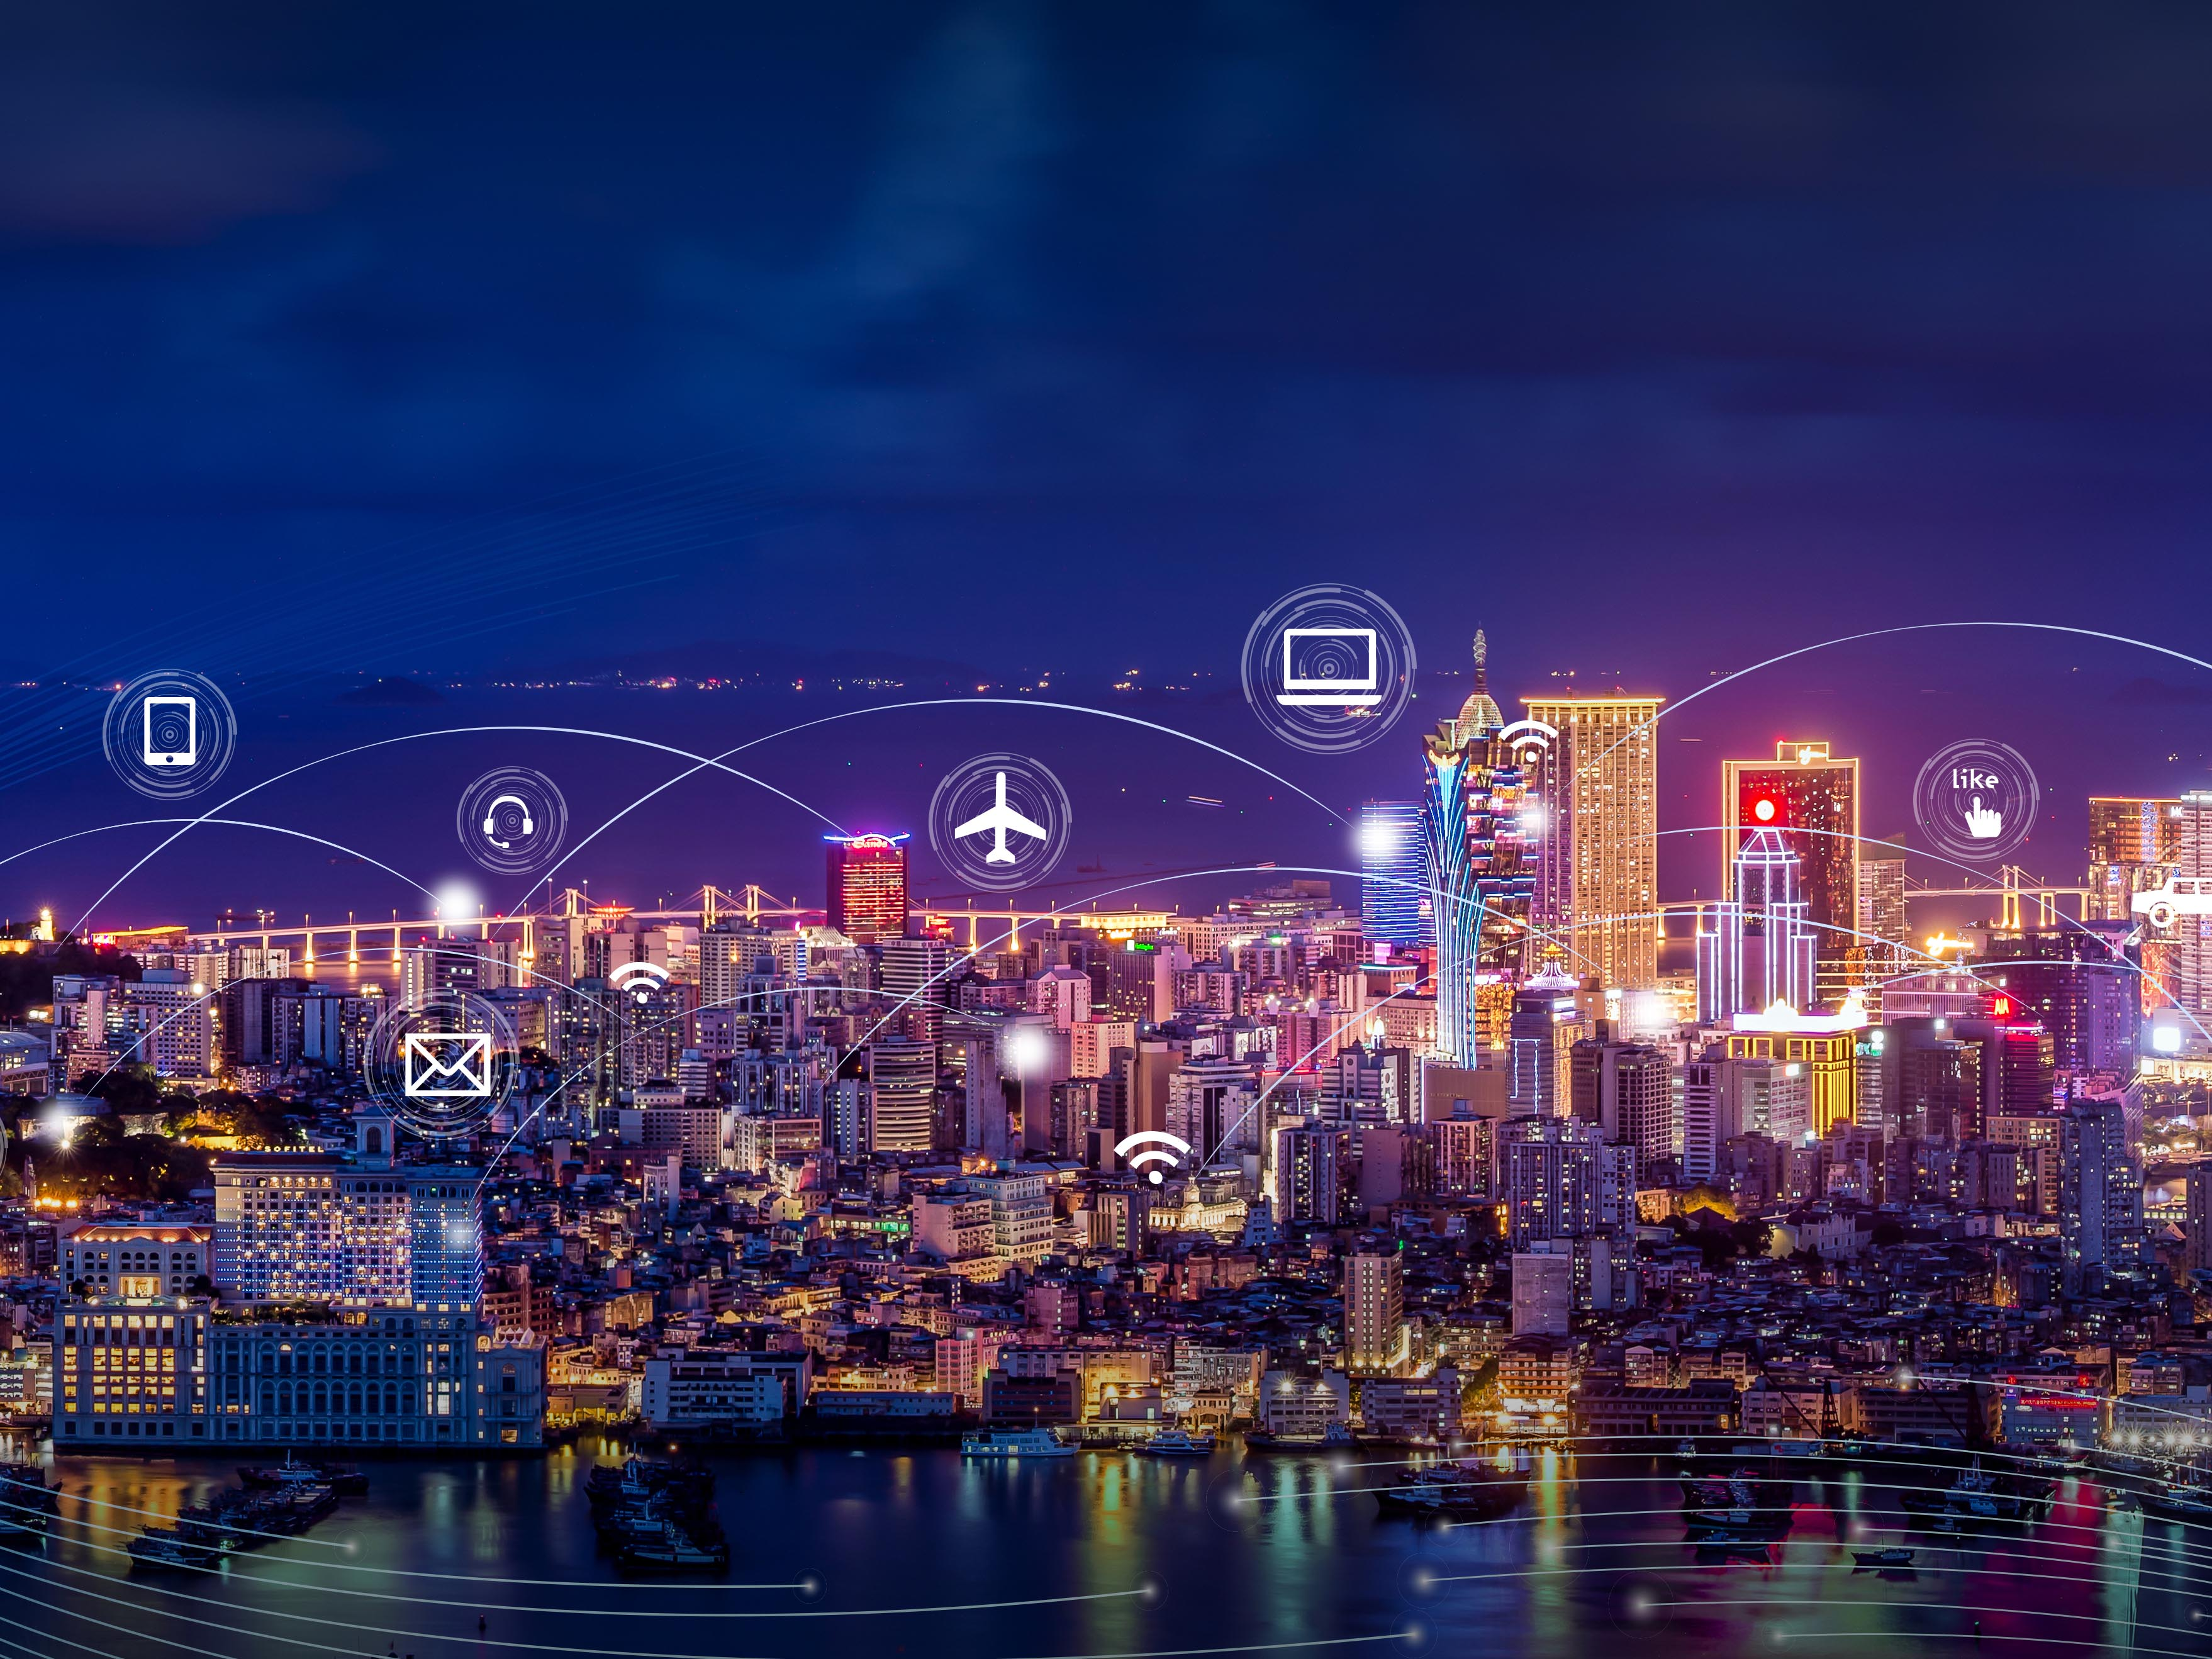 Smart city research at UM aims to support the SAR government to develop Macao into a smart city